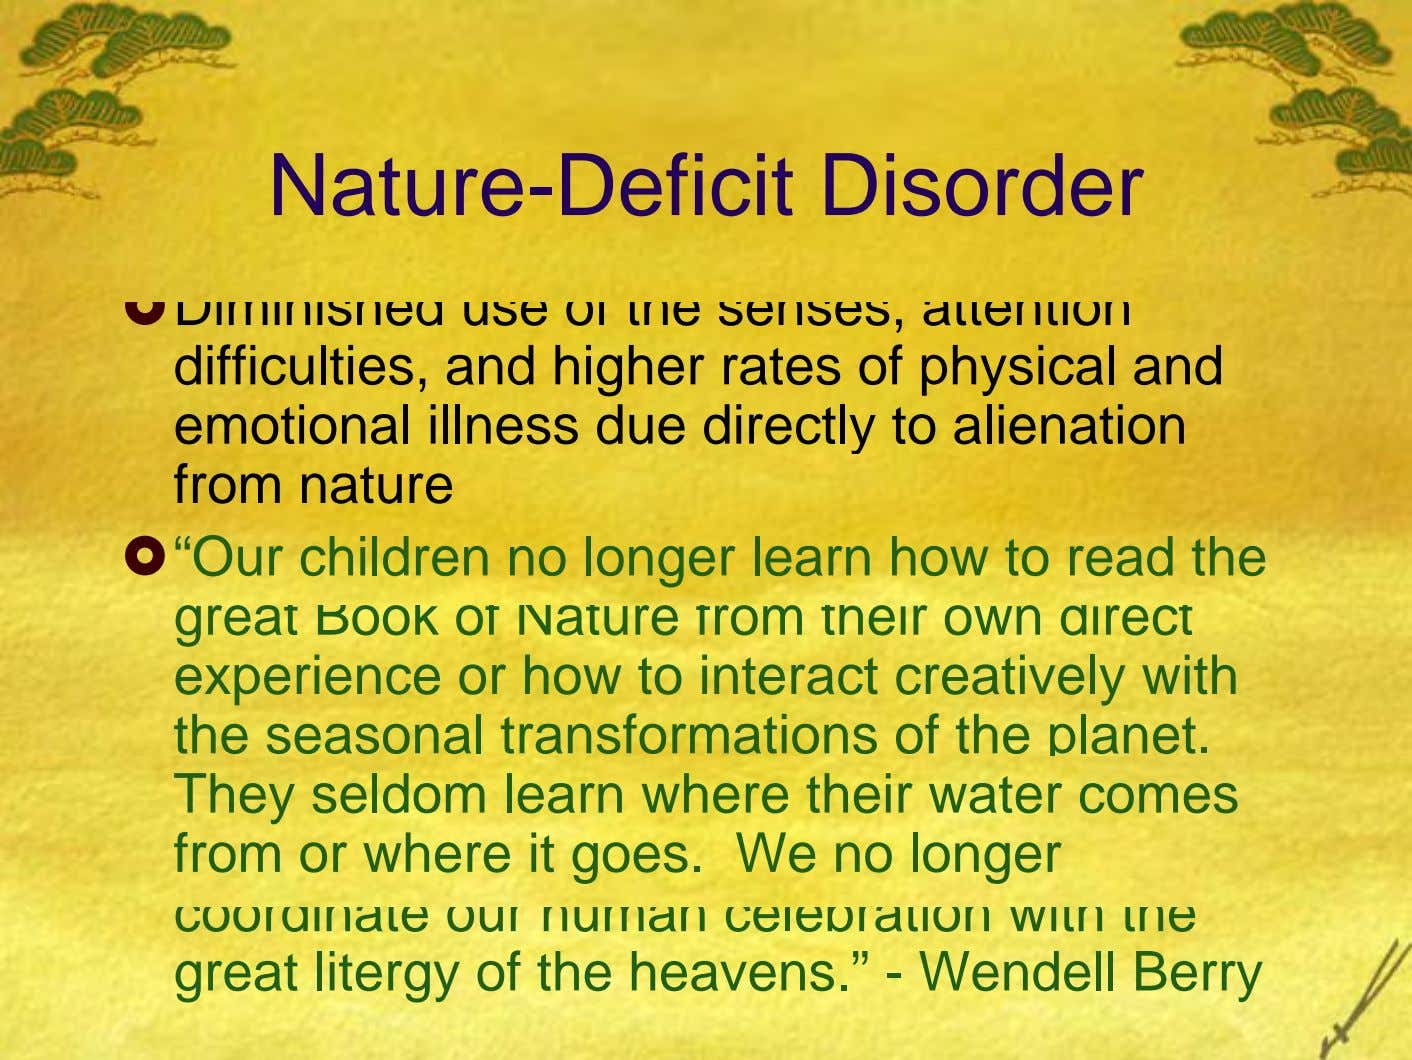 Nature-Deficit Disorder Diminished use of the senses, attention difficulties, and higher rates of physical and emotional